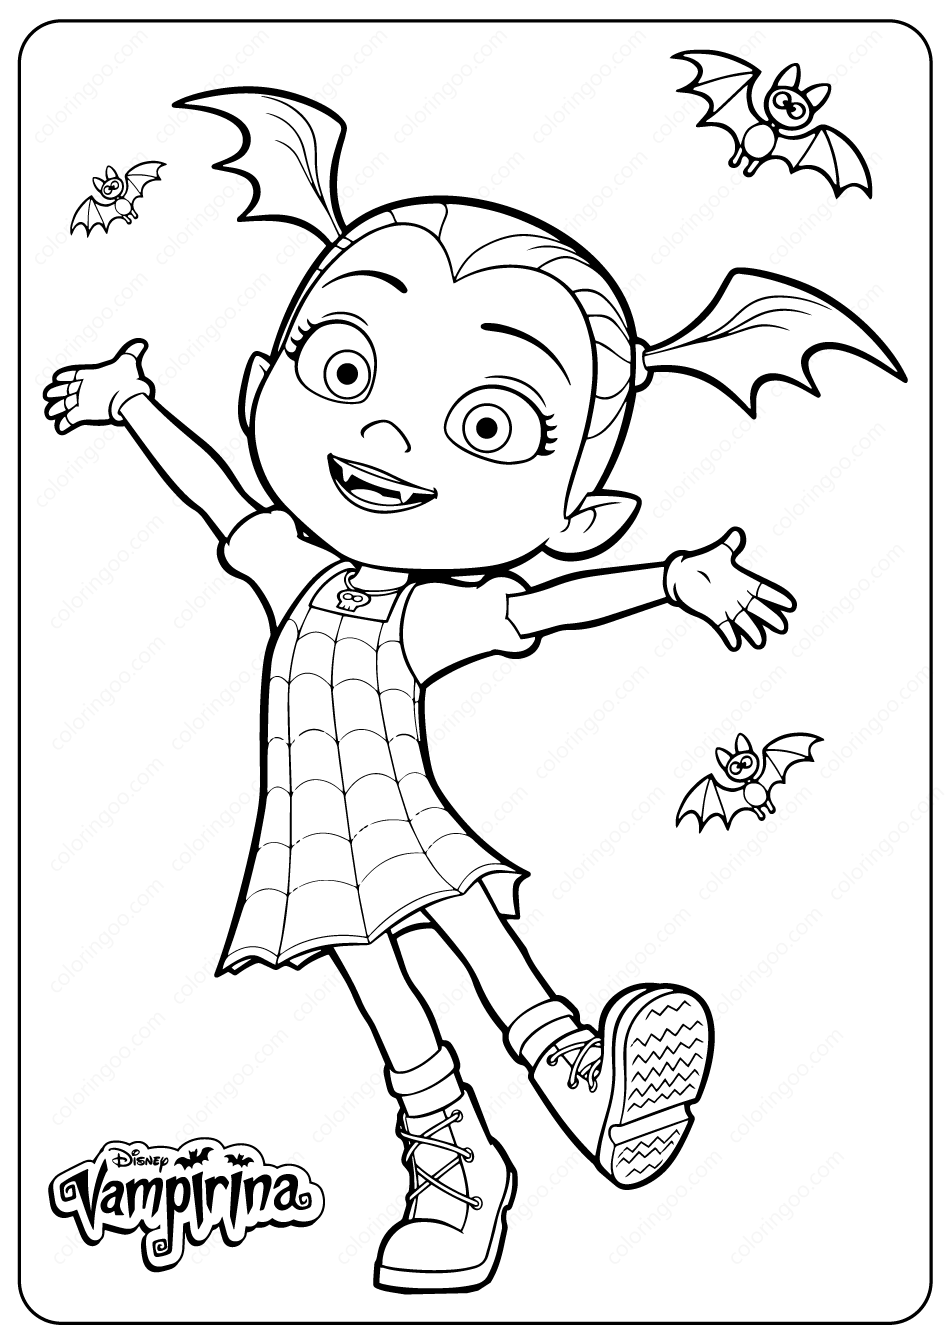 Disney Junior Vampirina Coloring Pages In 2020 Disney Coloring Pages Printables Coloring Pages Disney Coloring Pages